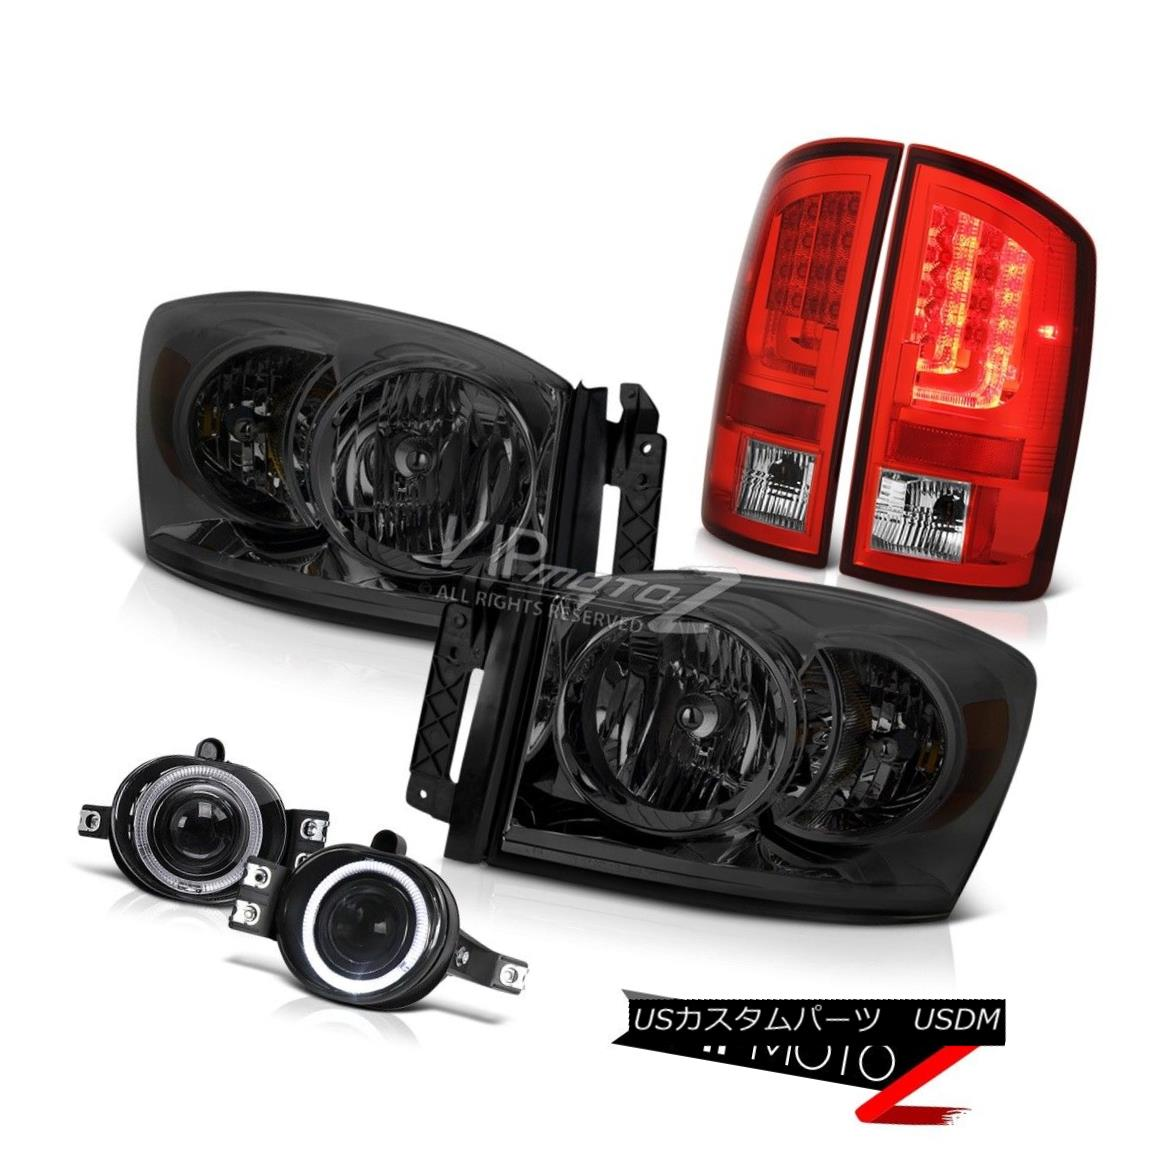 ヘッドライト 2006 Ram 3.7L Wine Red Tail Brake Lamps Headlamps Fog Oe STyle